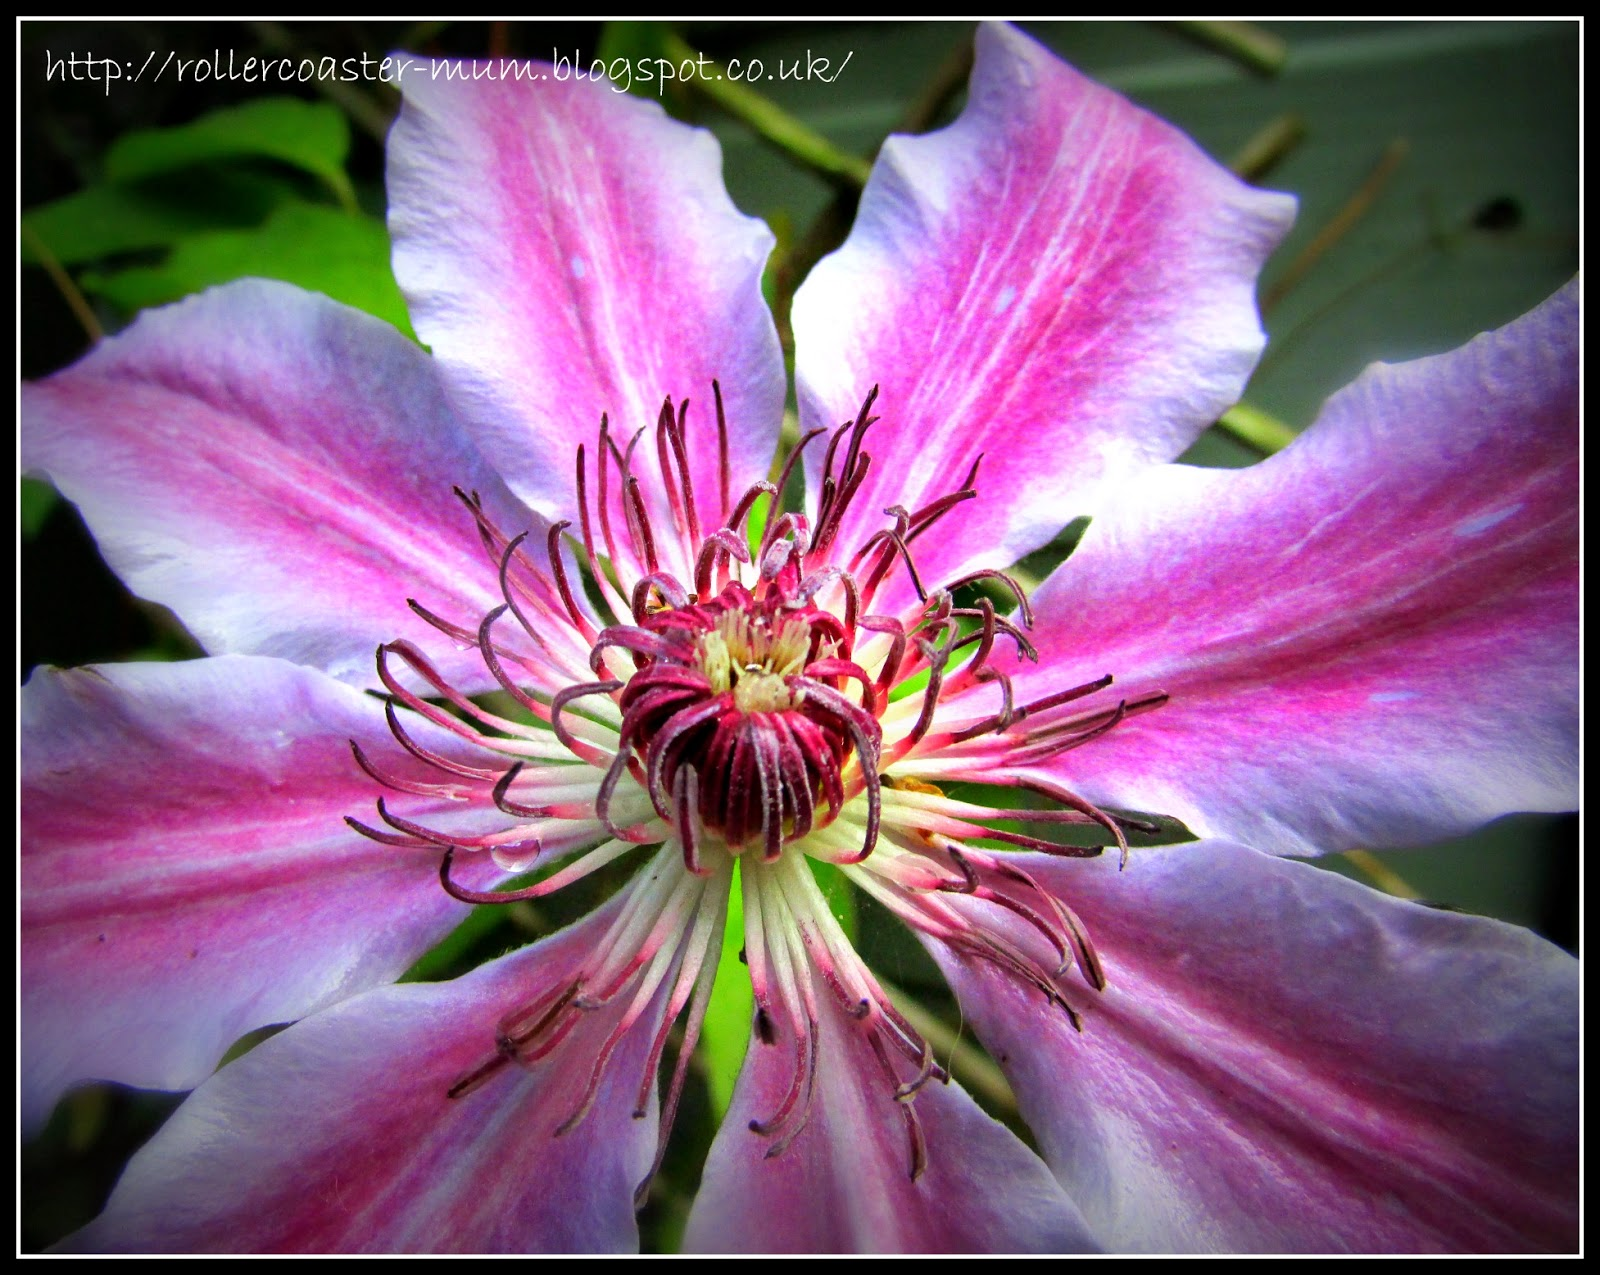 Purple and white Clematis flower